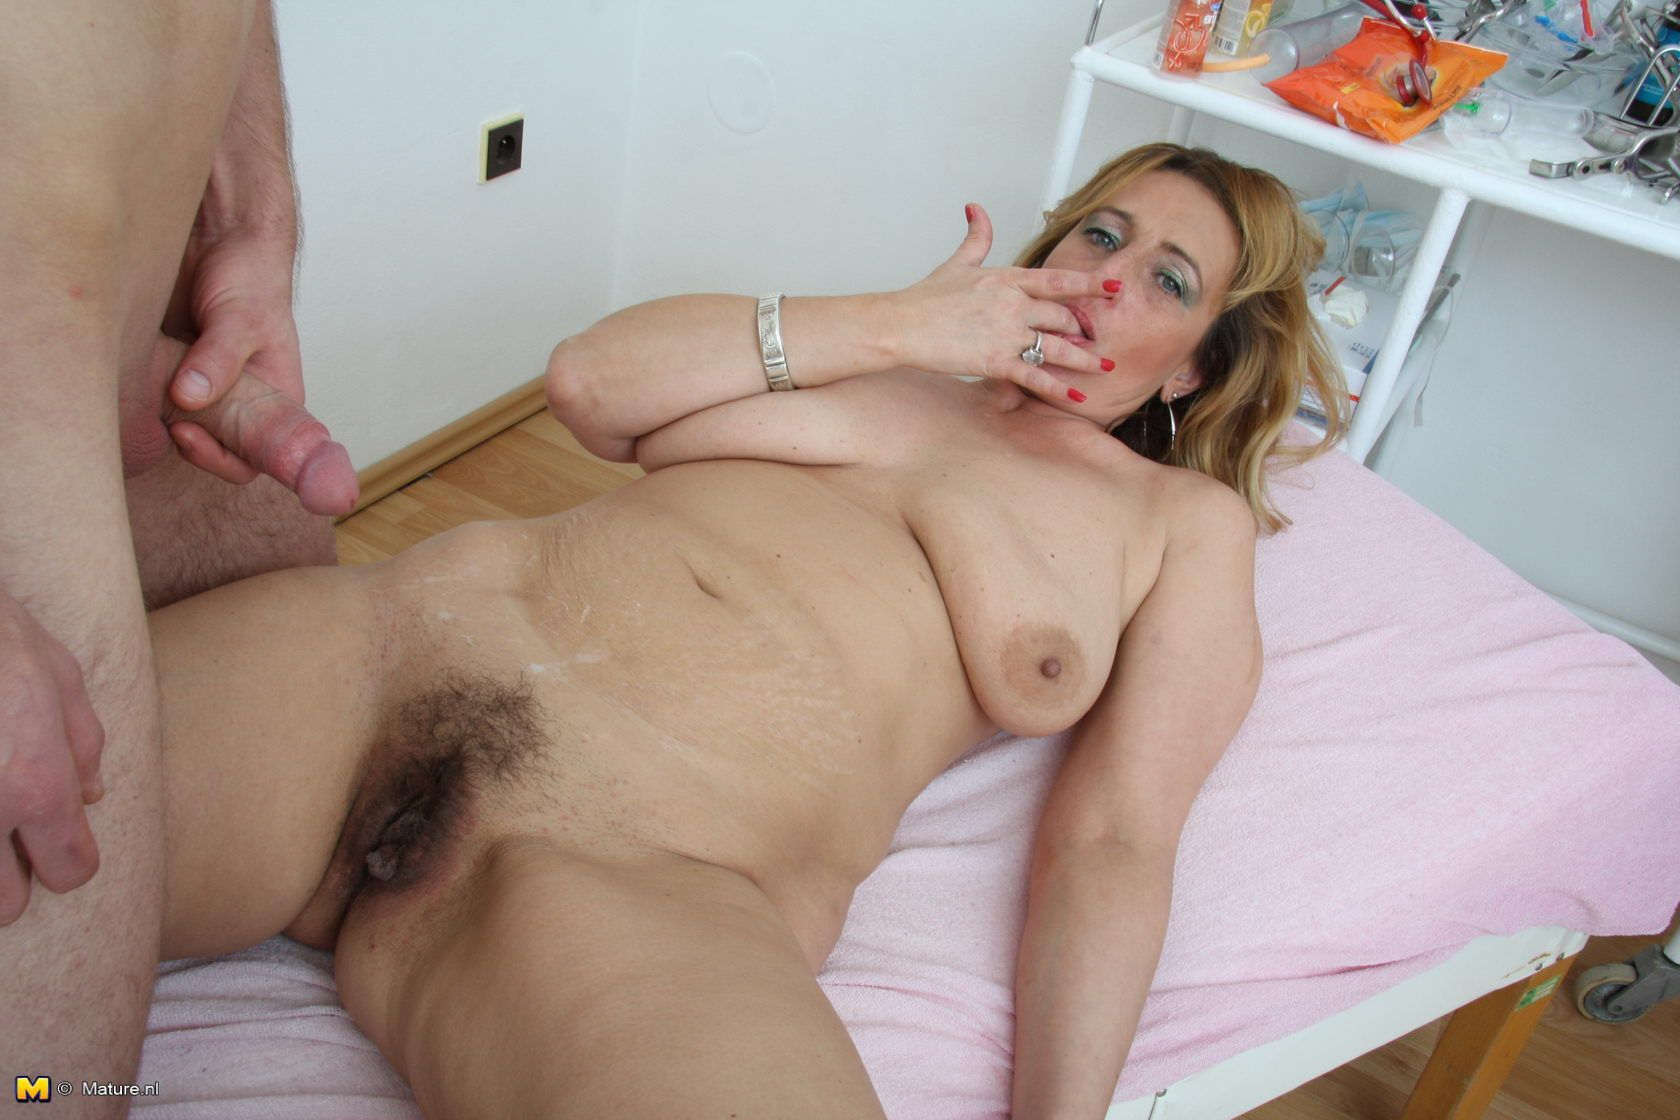 Best mature free video site